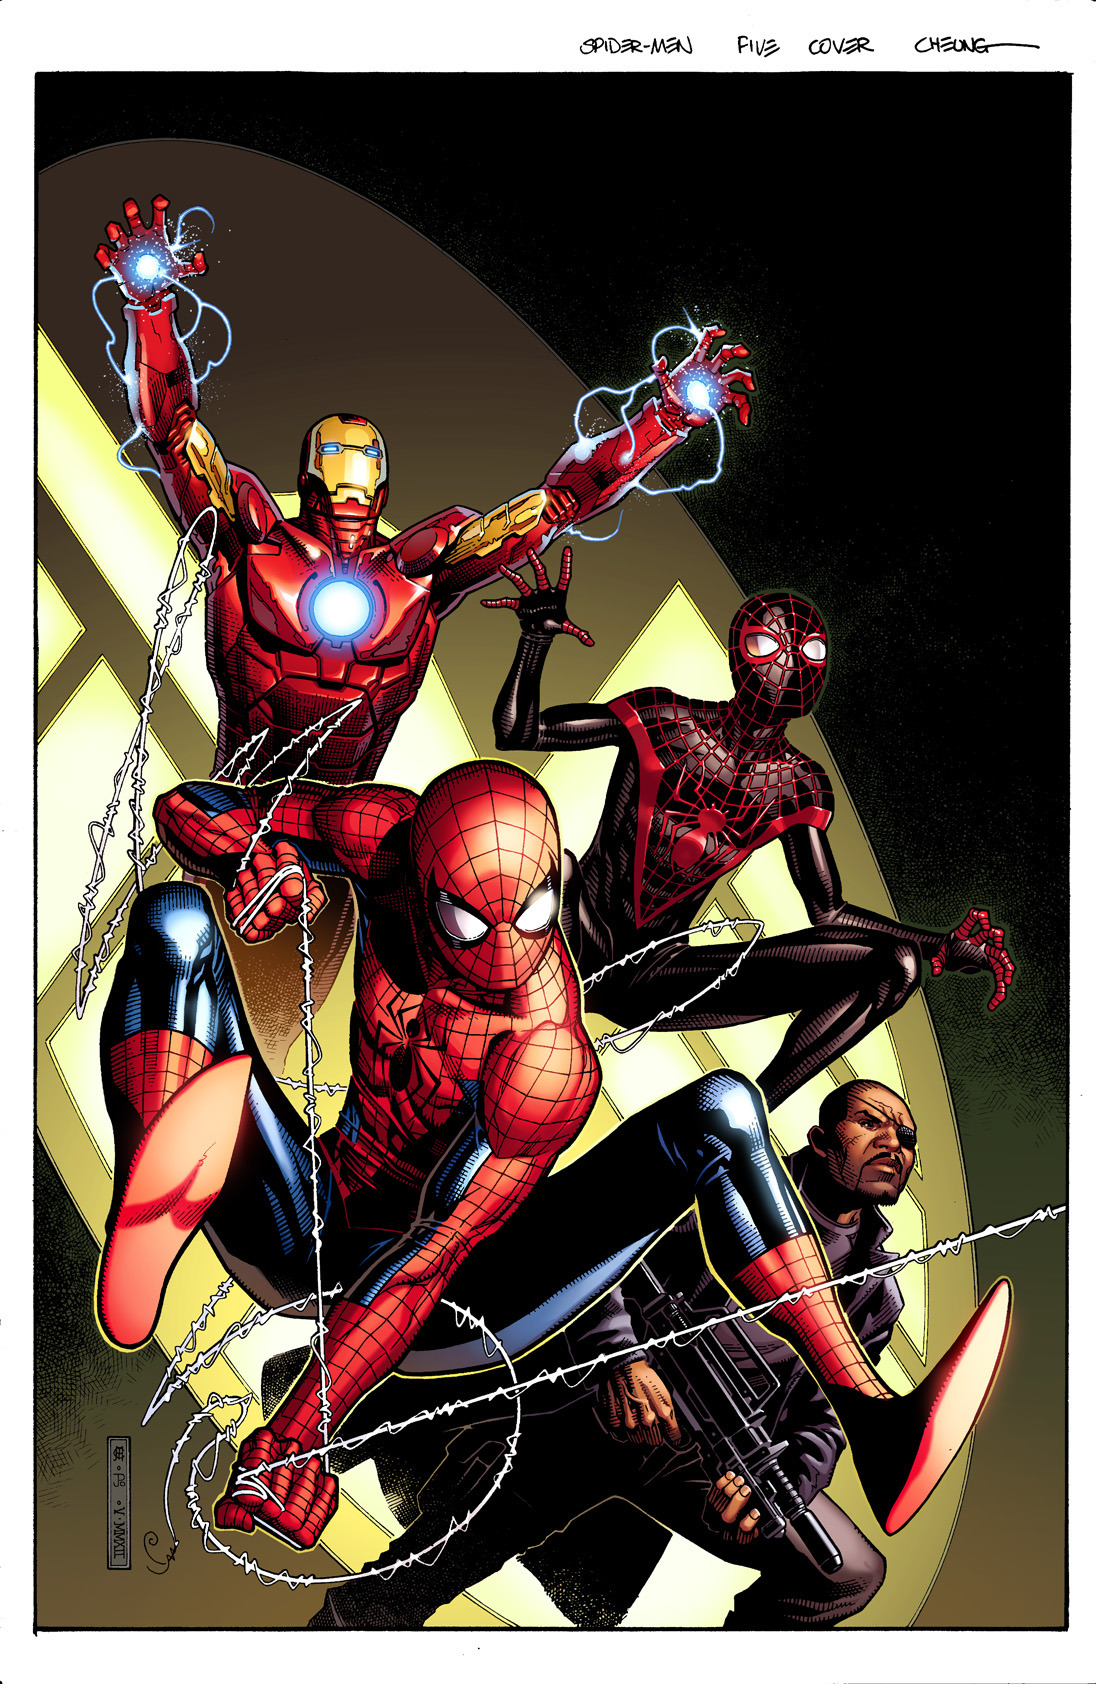 brianmichaelbendis:  tumbler exclusive! Spider-men 5 cover by cheung and posner!!